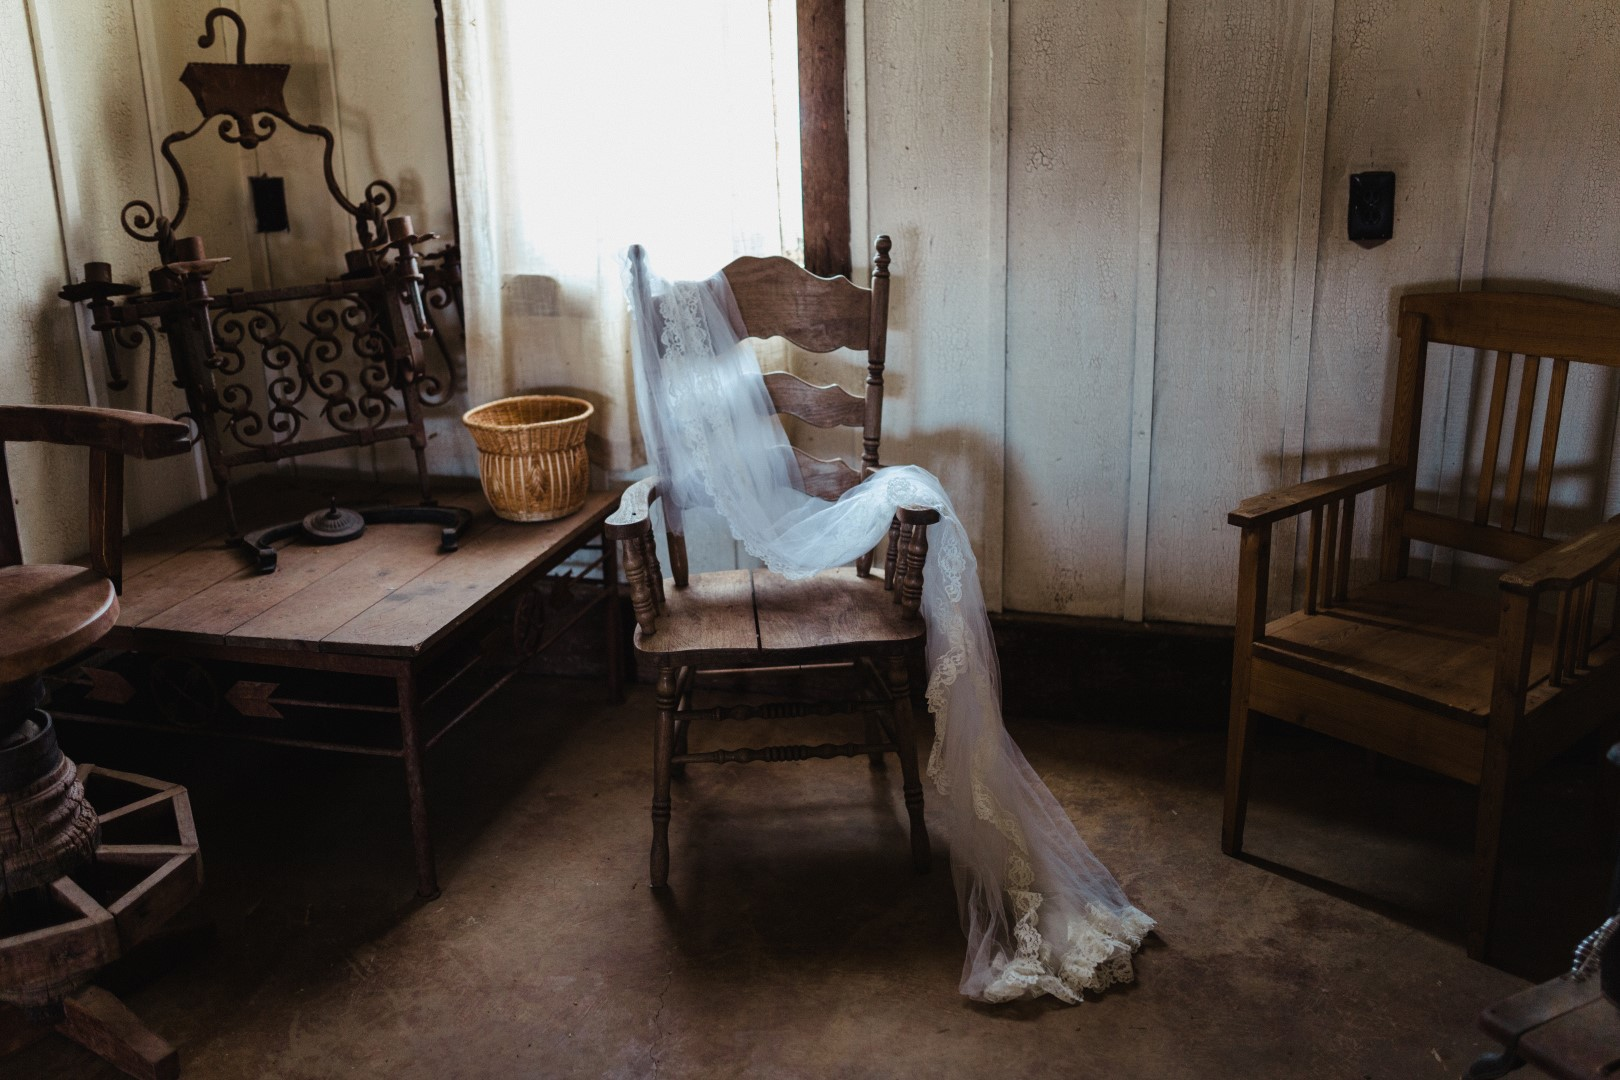 Kandace Photography   Sentimental Bride Remembers her Mom in a Special Way on Her Wedding Day